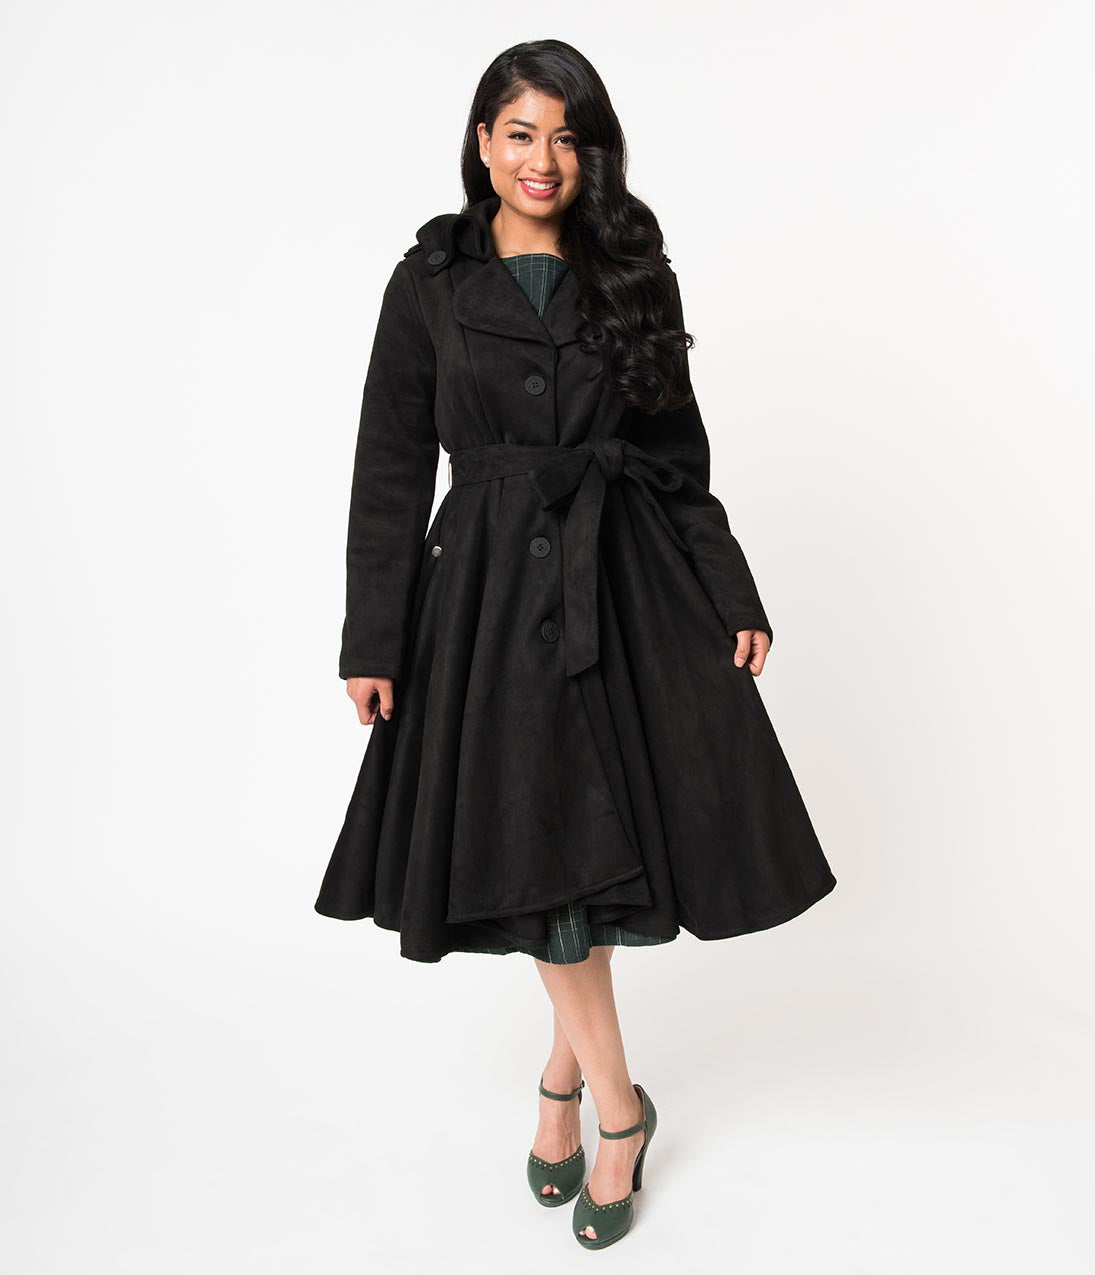 1950s Jackets, Coats, Bolero | Swing, Pin Up, Rockabilly Black Suede Button Up Long Sleeve Swing Coat $118.00 AT vintagedancer.com